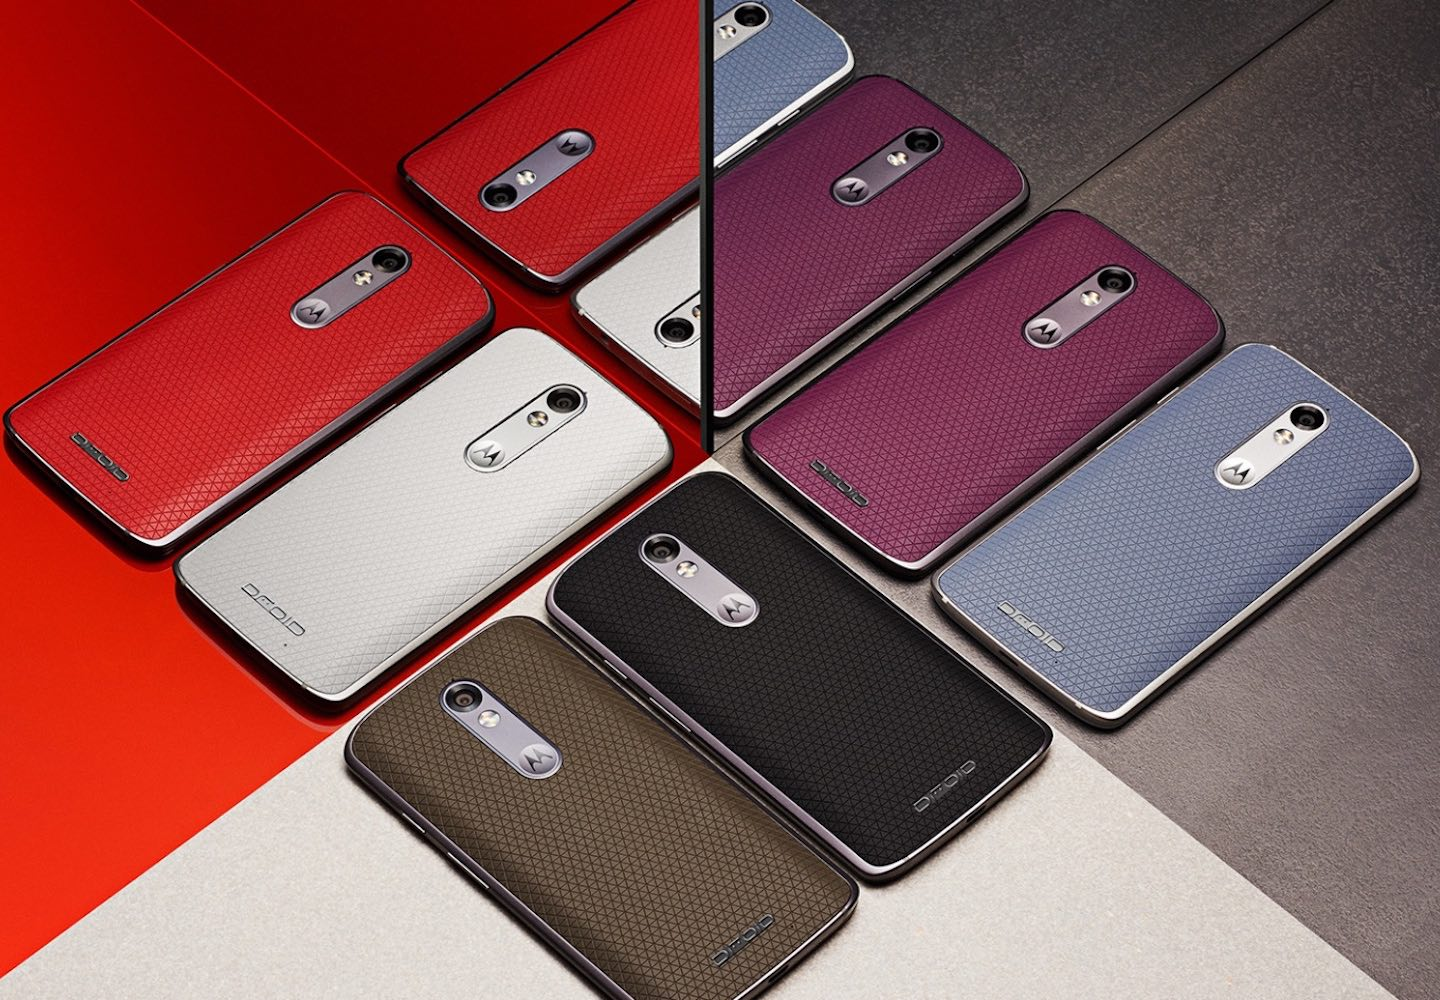 Motorola Droid Turbo 2 with 4.5 inch Shatterproof Screen